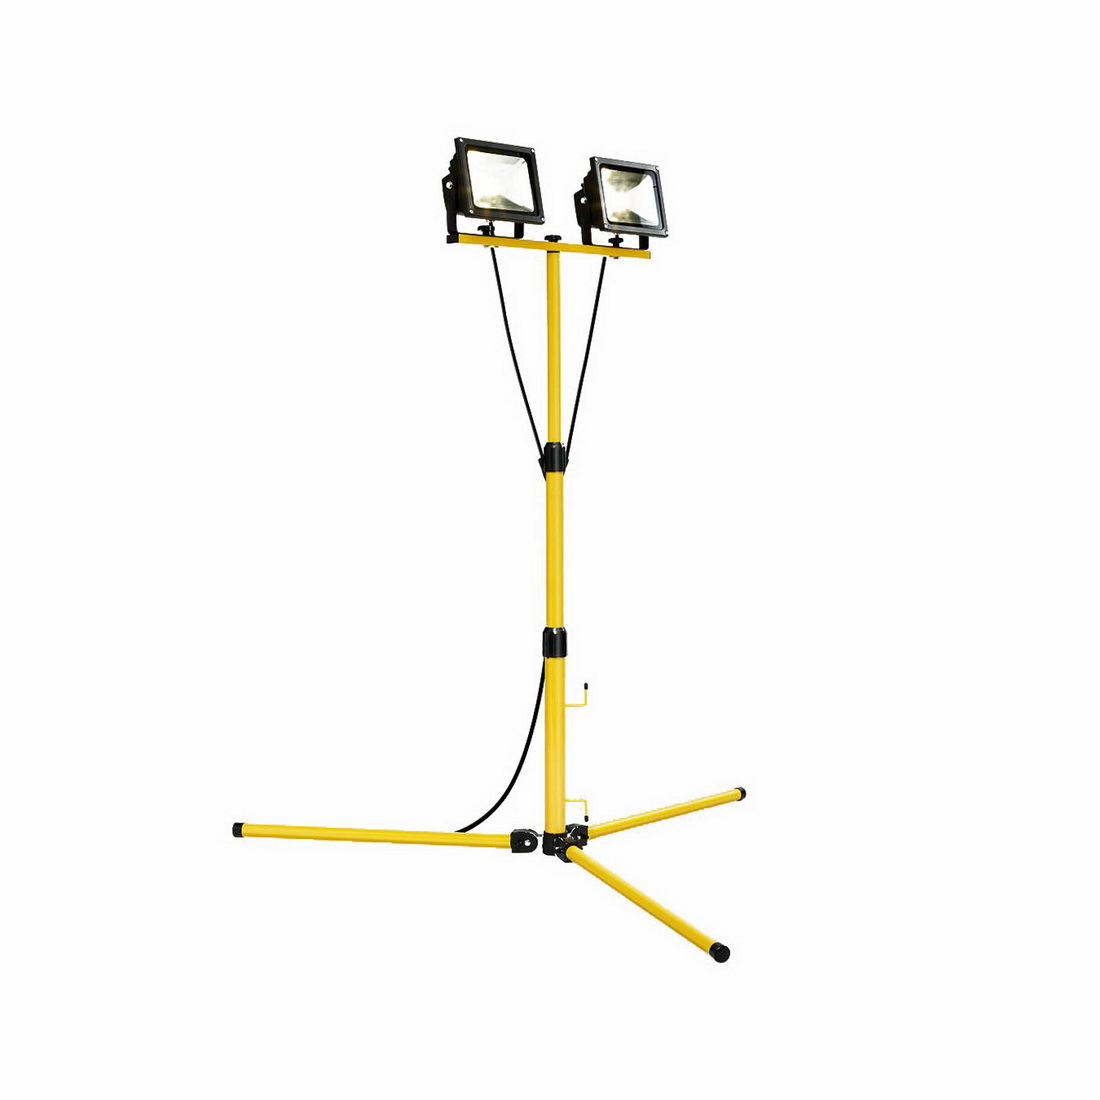 Forta 2x20W IP44 Forta LED Work Light